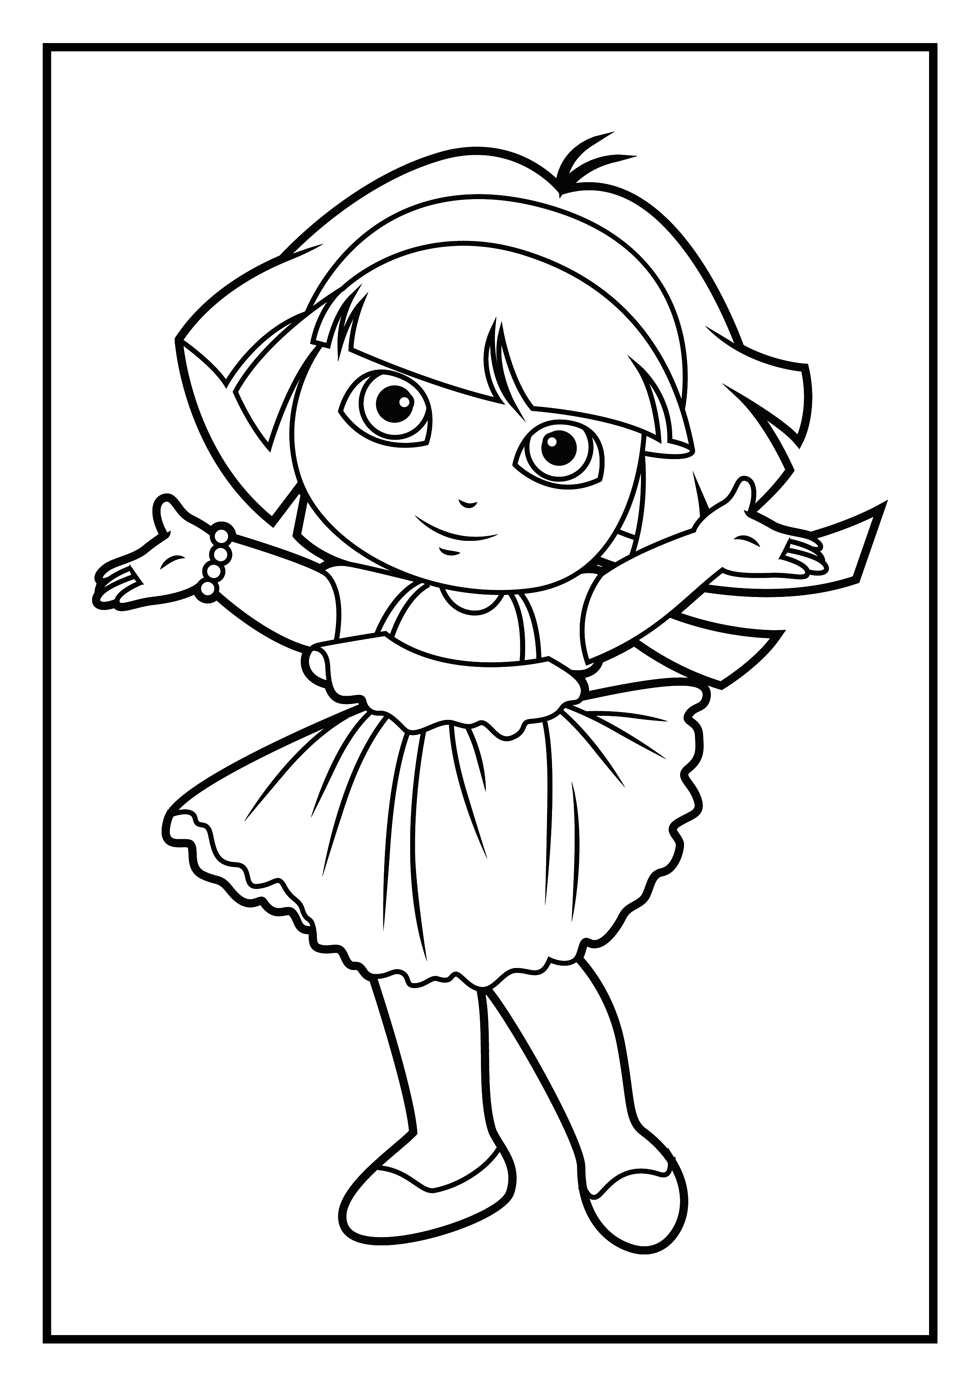 Dora 2015 Coloring Pages 01